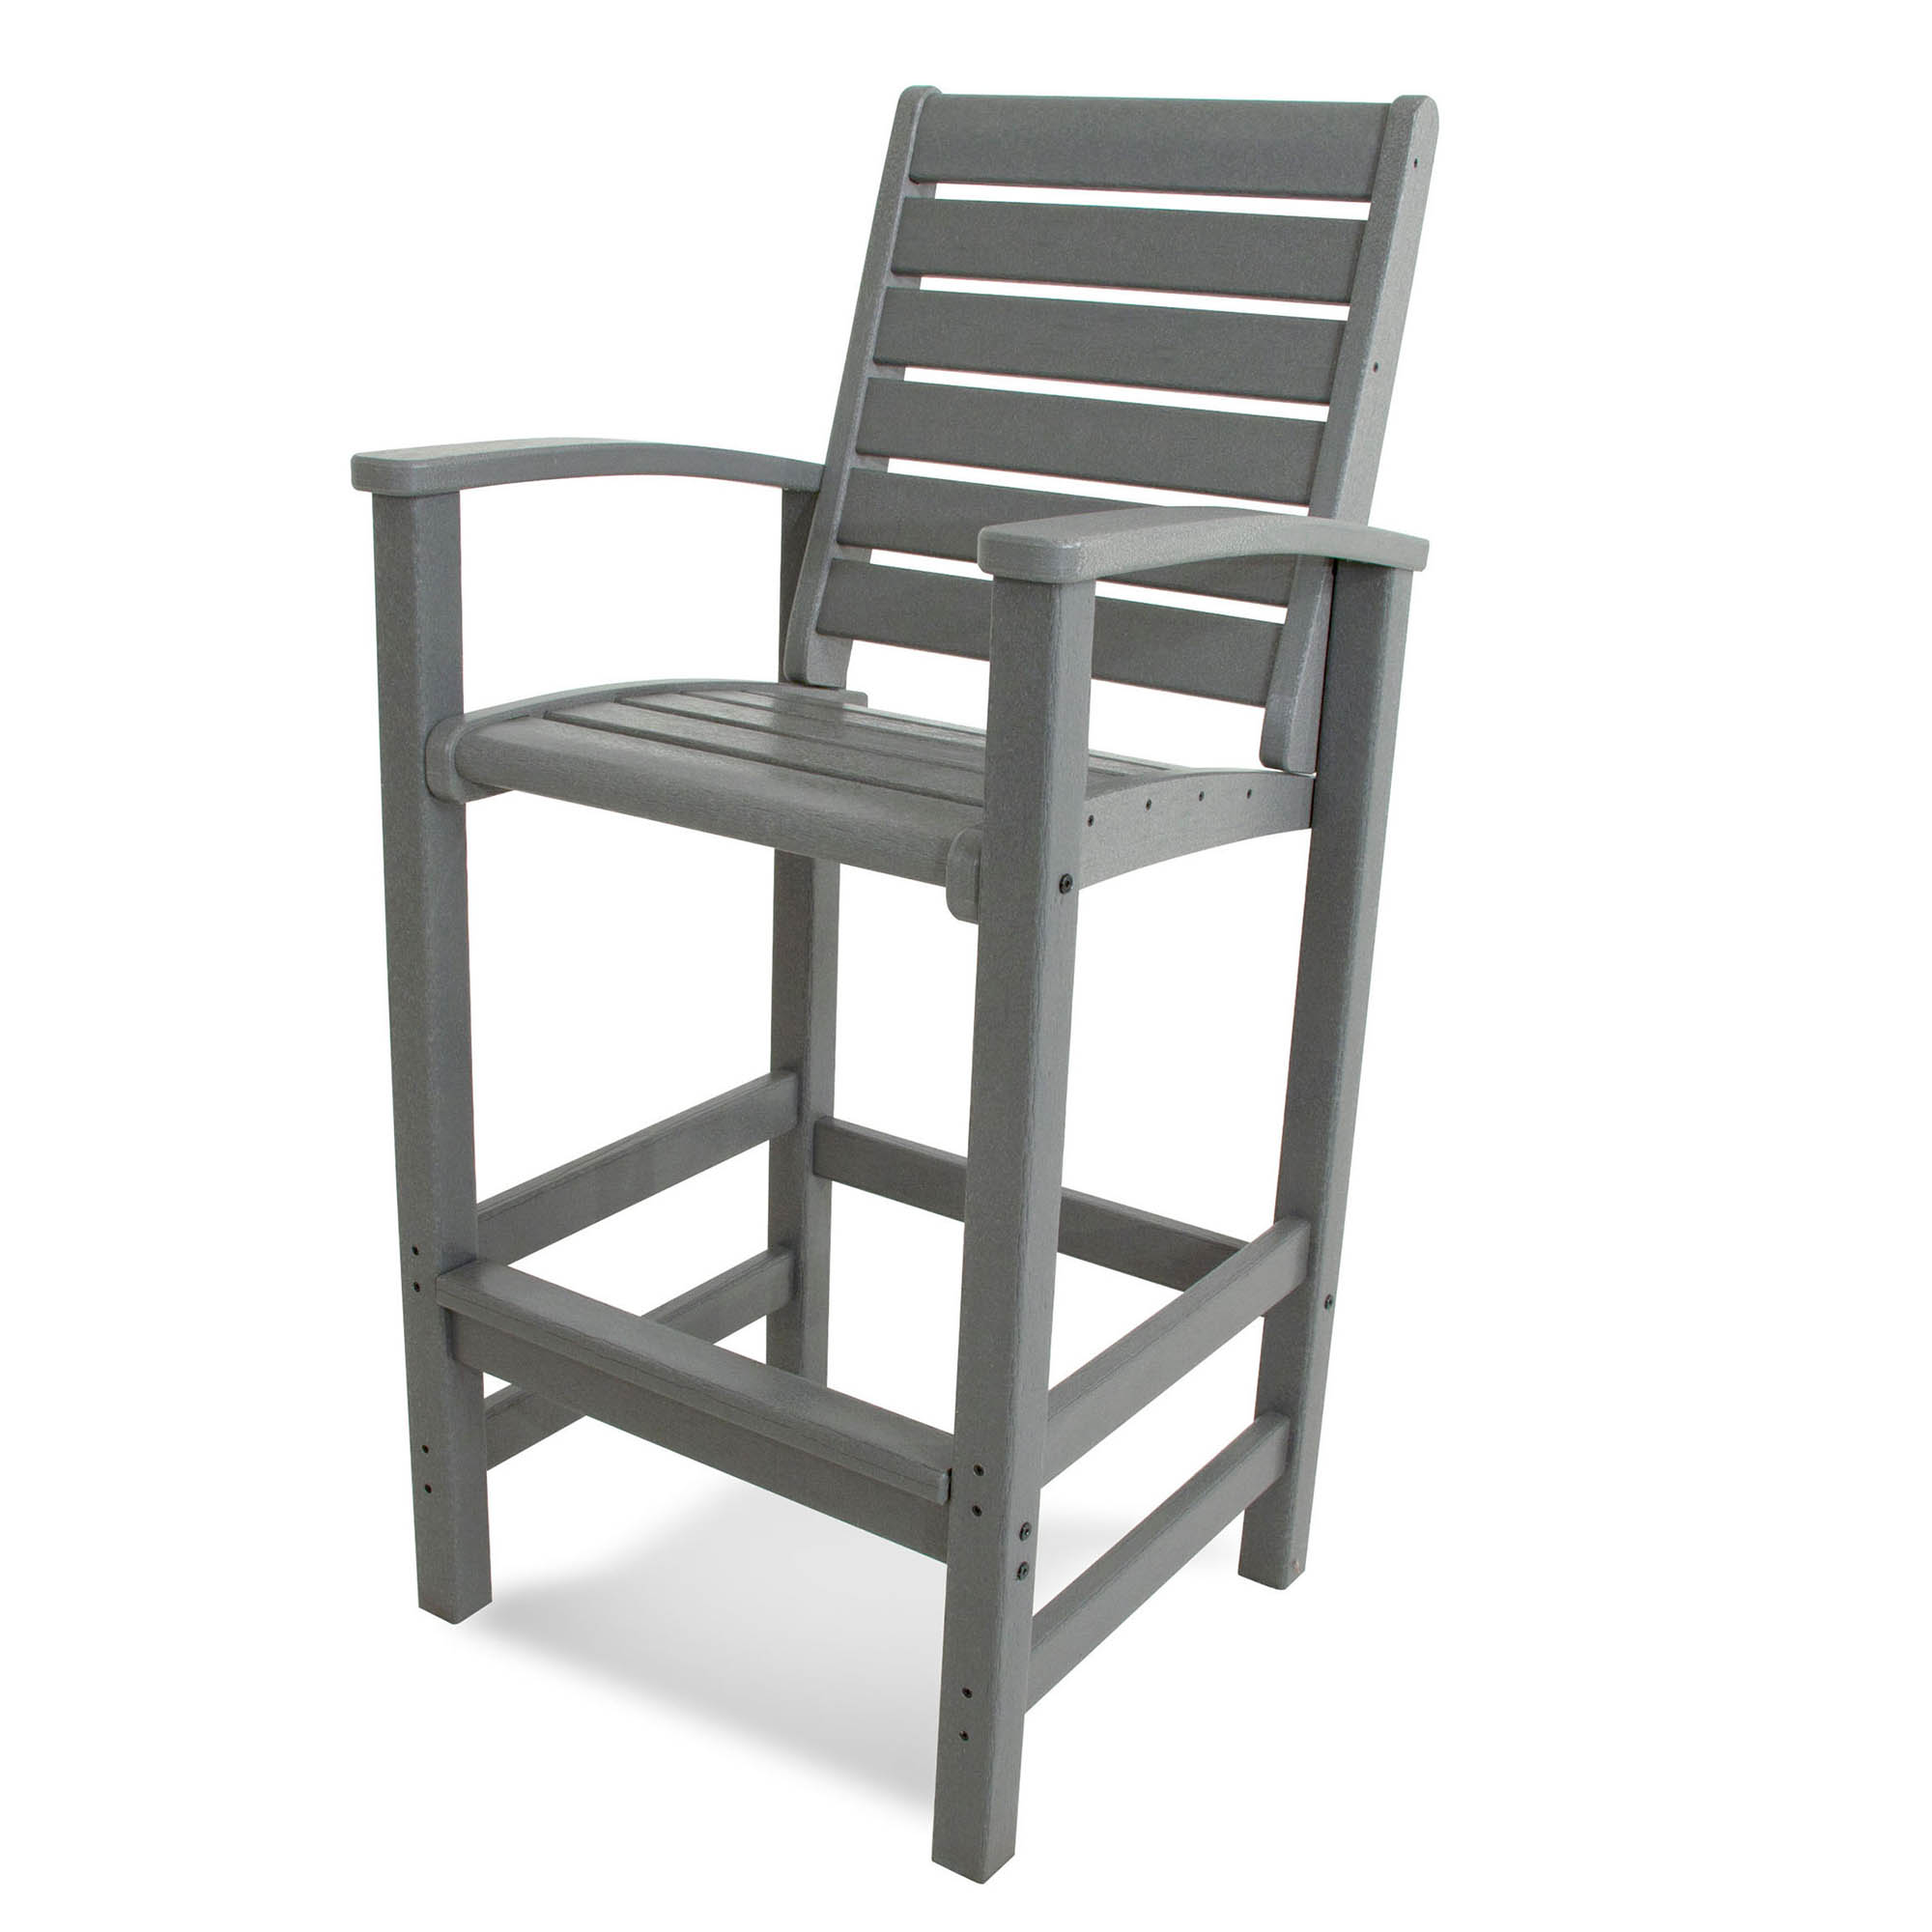 Learn more about Signature Bar Chair Product Photo